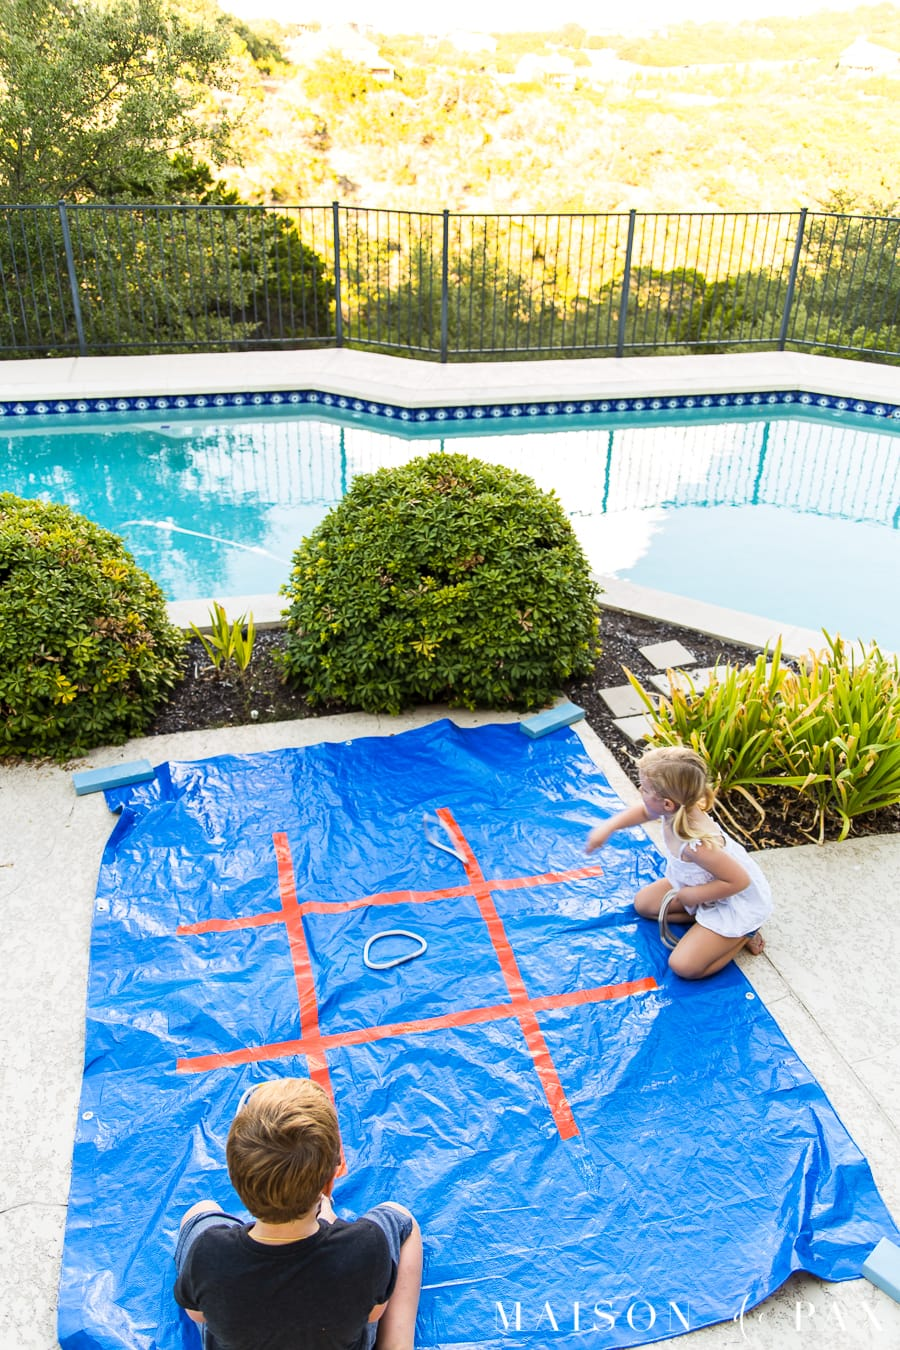 Make giant tic tac toe with your kids: find this and other family projects plus tips for completing project with kids! #familyfun #familyproject #outdoorgames #kidfriendlyproject #diyproject #yardgames